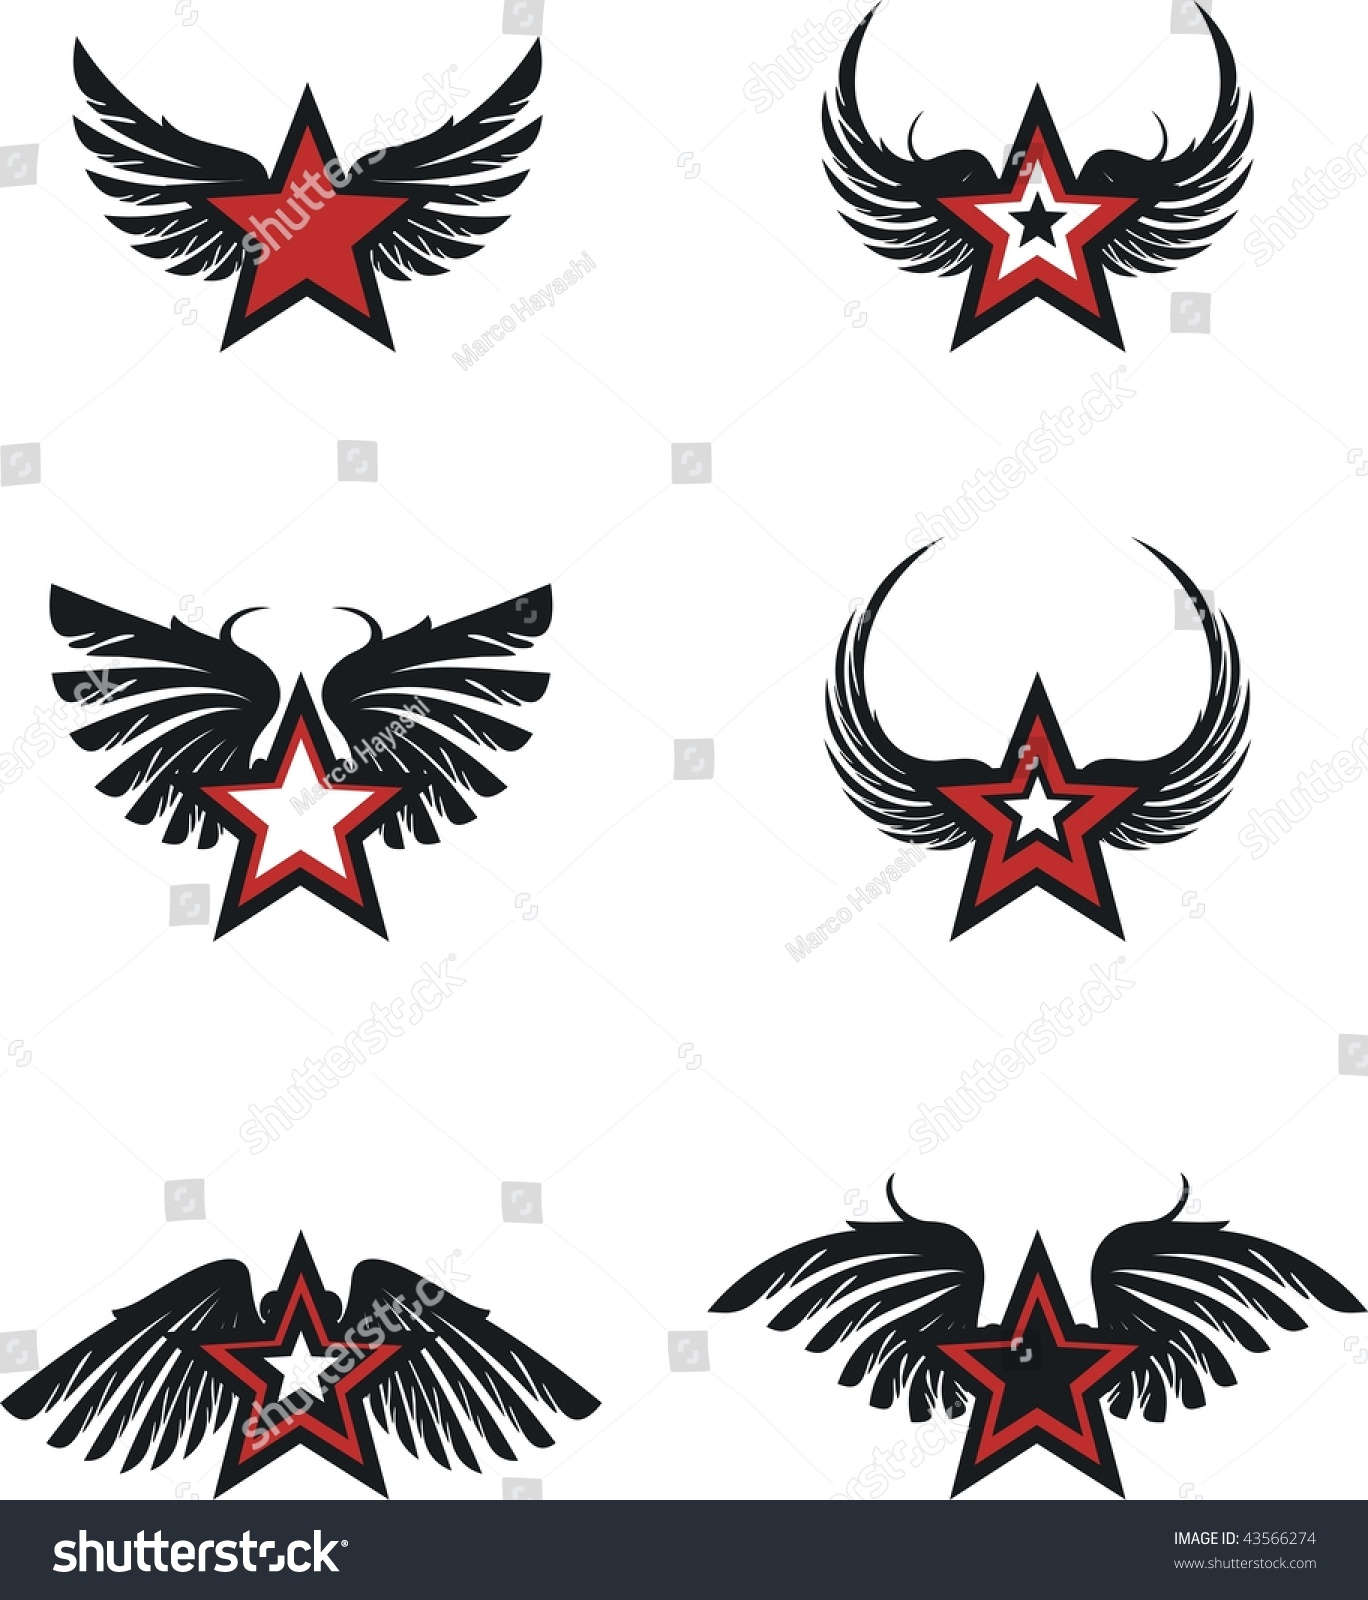 winged star set vector format very stock vector  winged star set in vector format very easy to edit